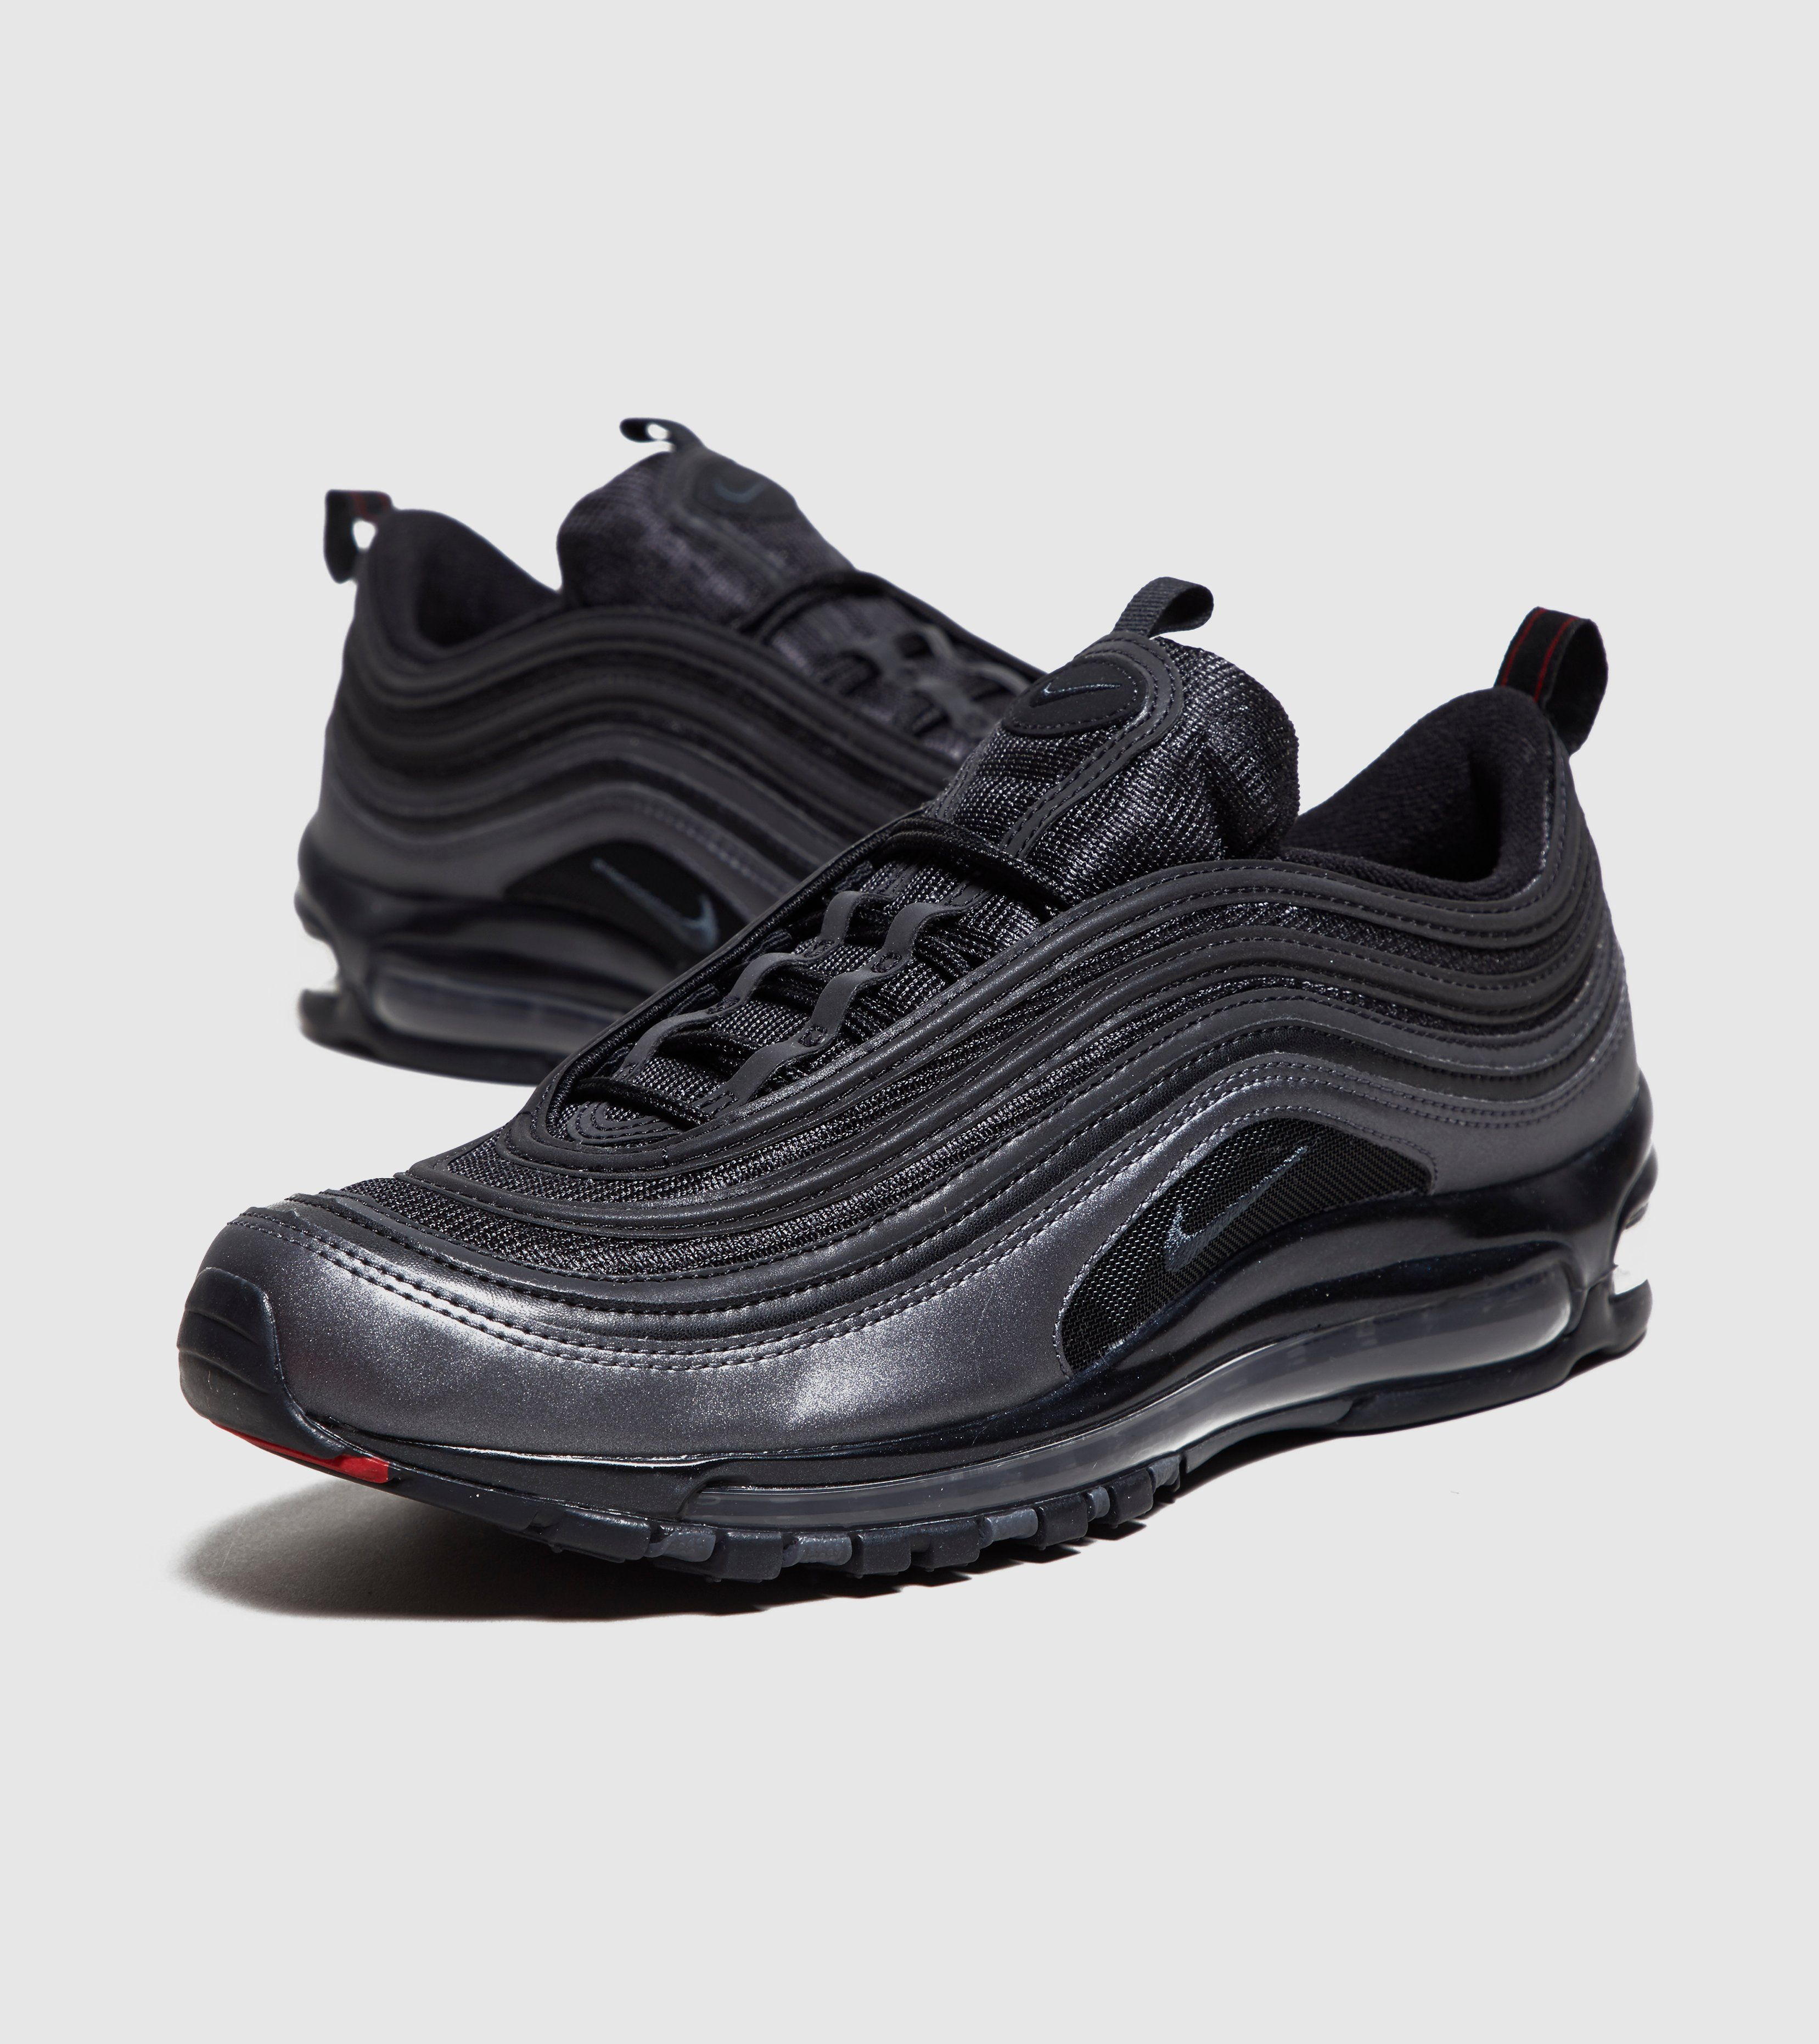 newest 88261 492cc Nike Air Max 97 - find out more on our site. Find the freshest in trainers  and clothing online now.